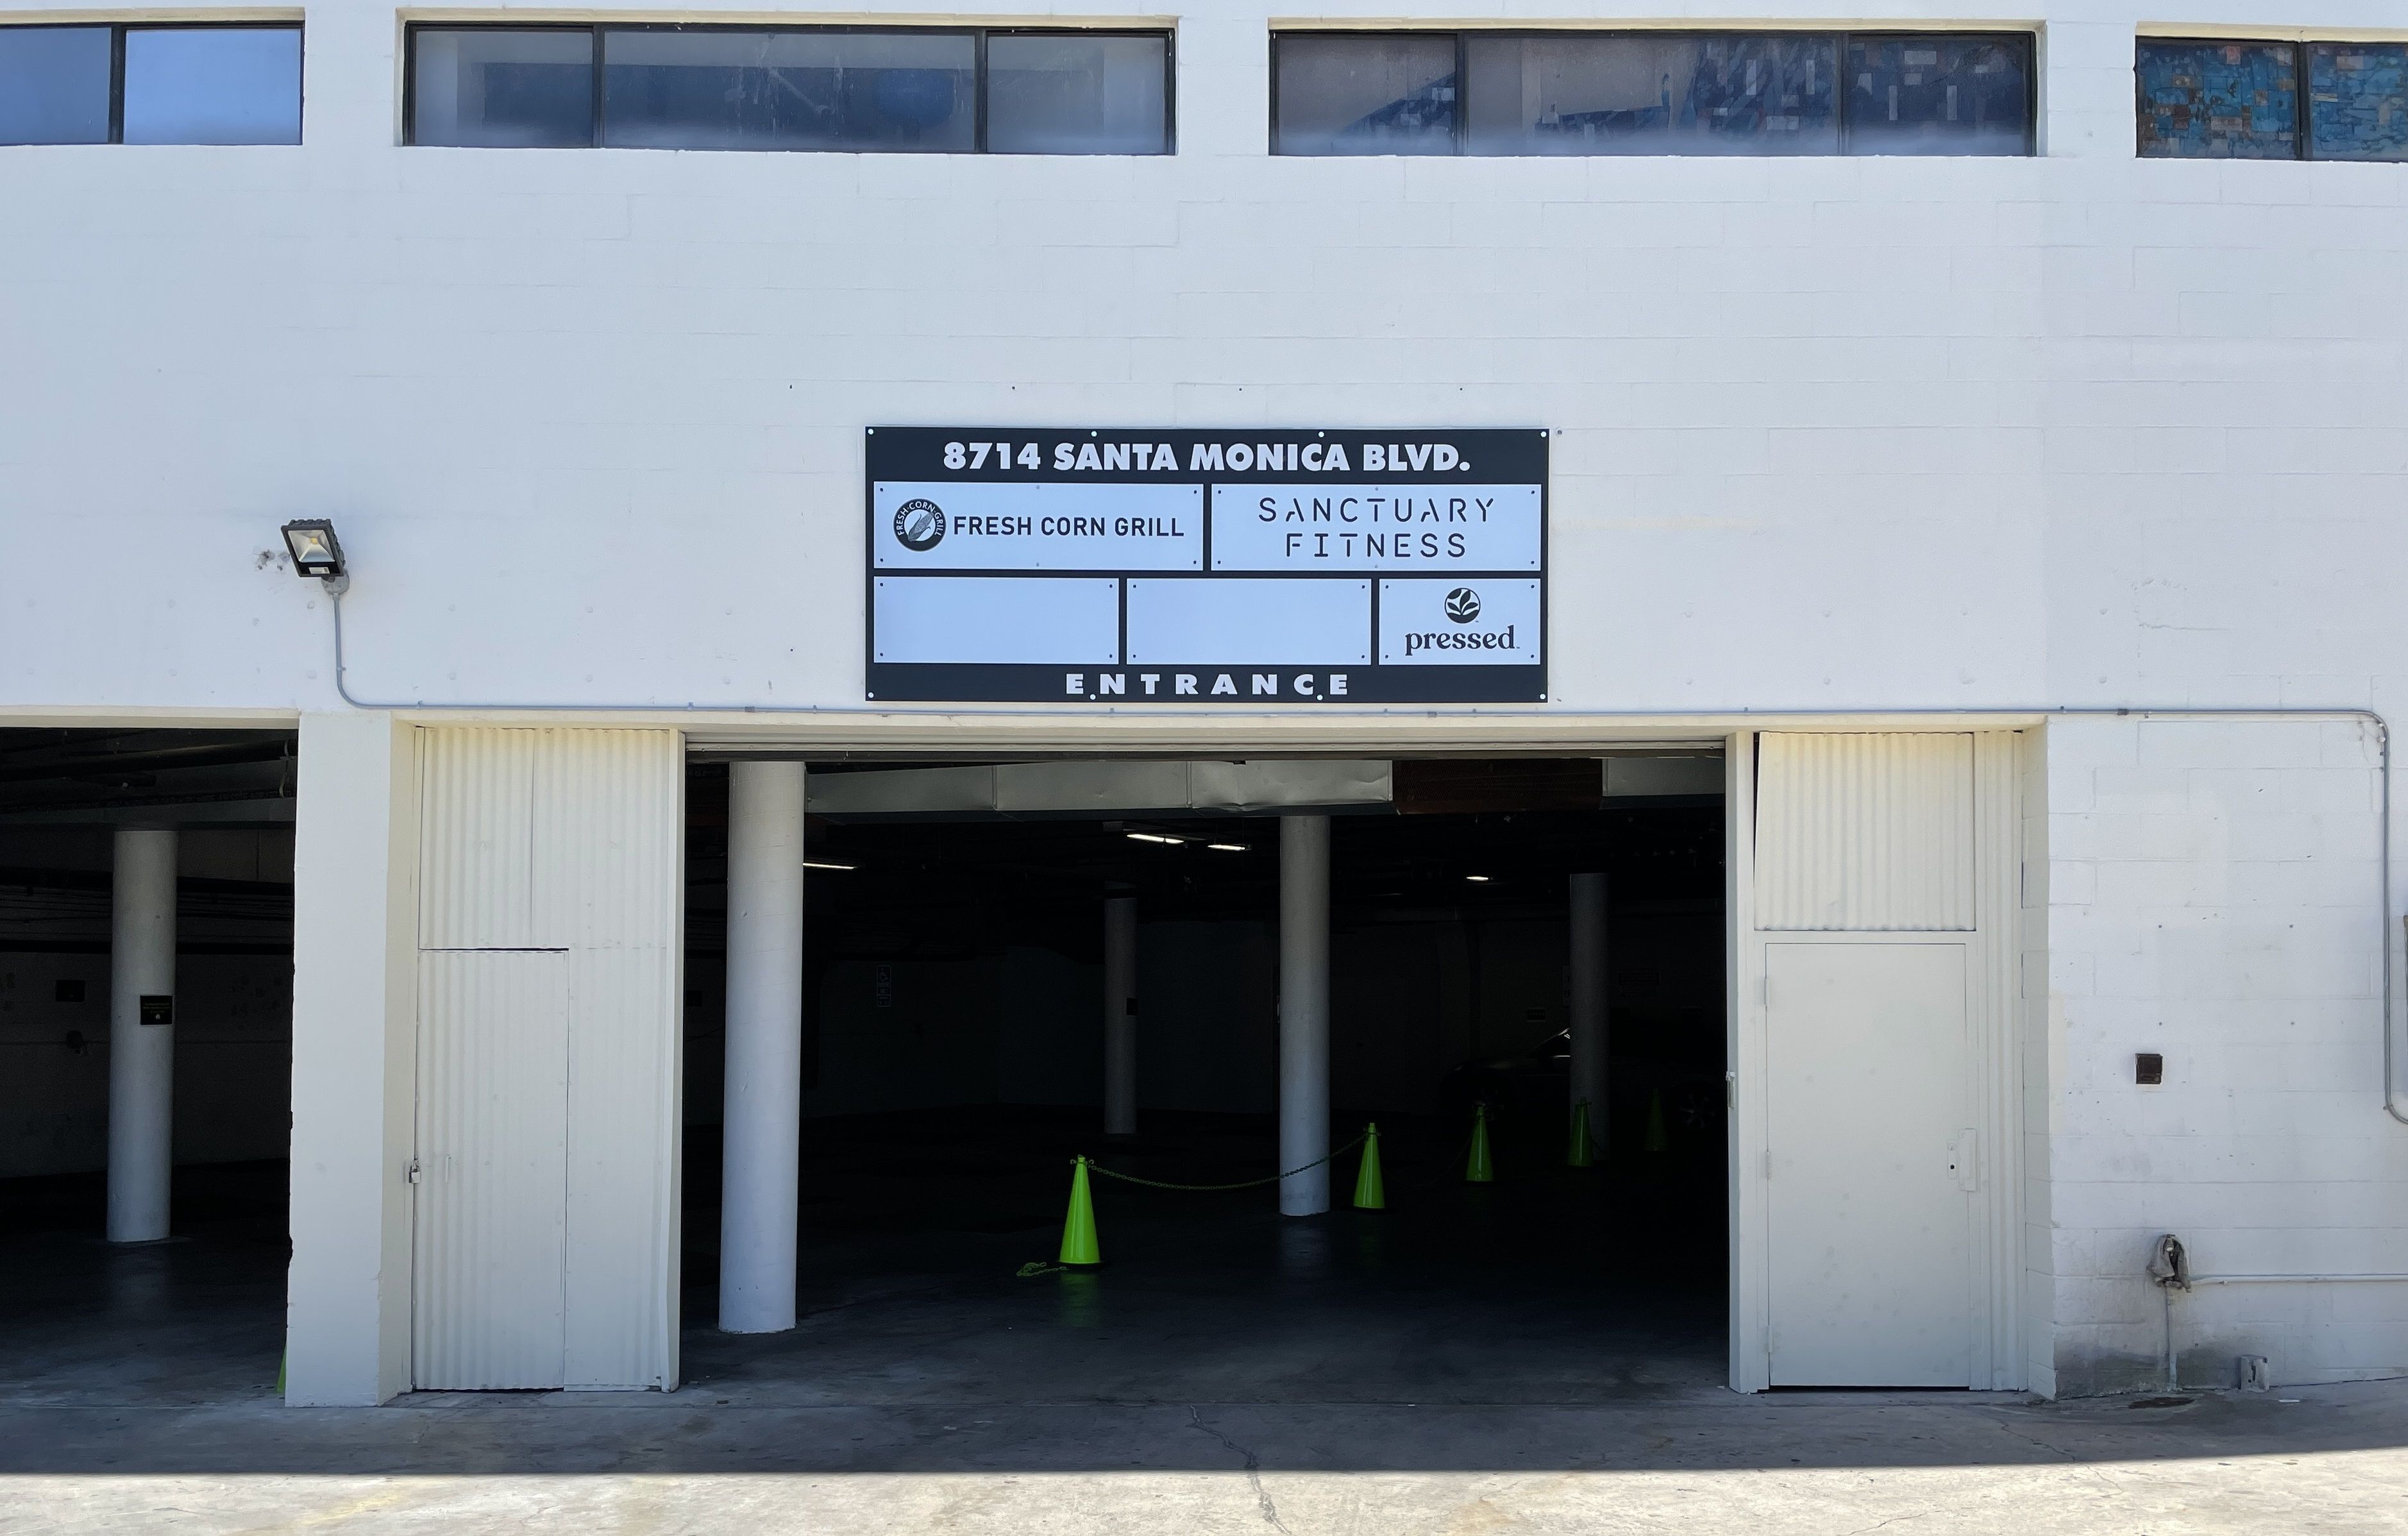 Our sign package for Ronco Investments Inc. also includes parking lot signs for their Beverly Hills building.